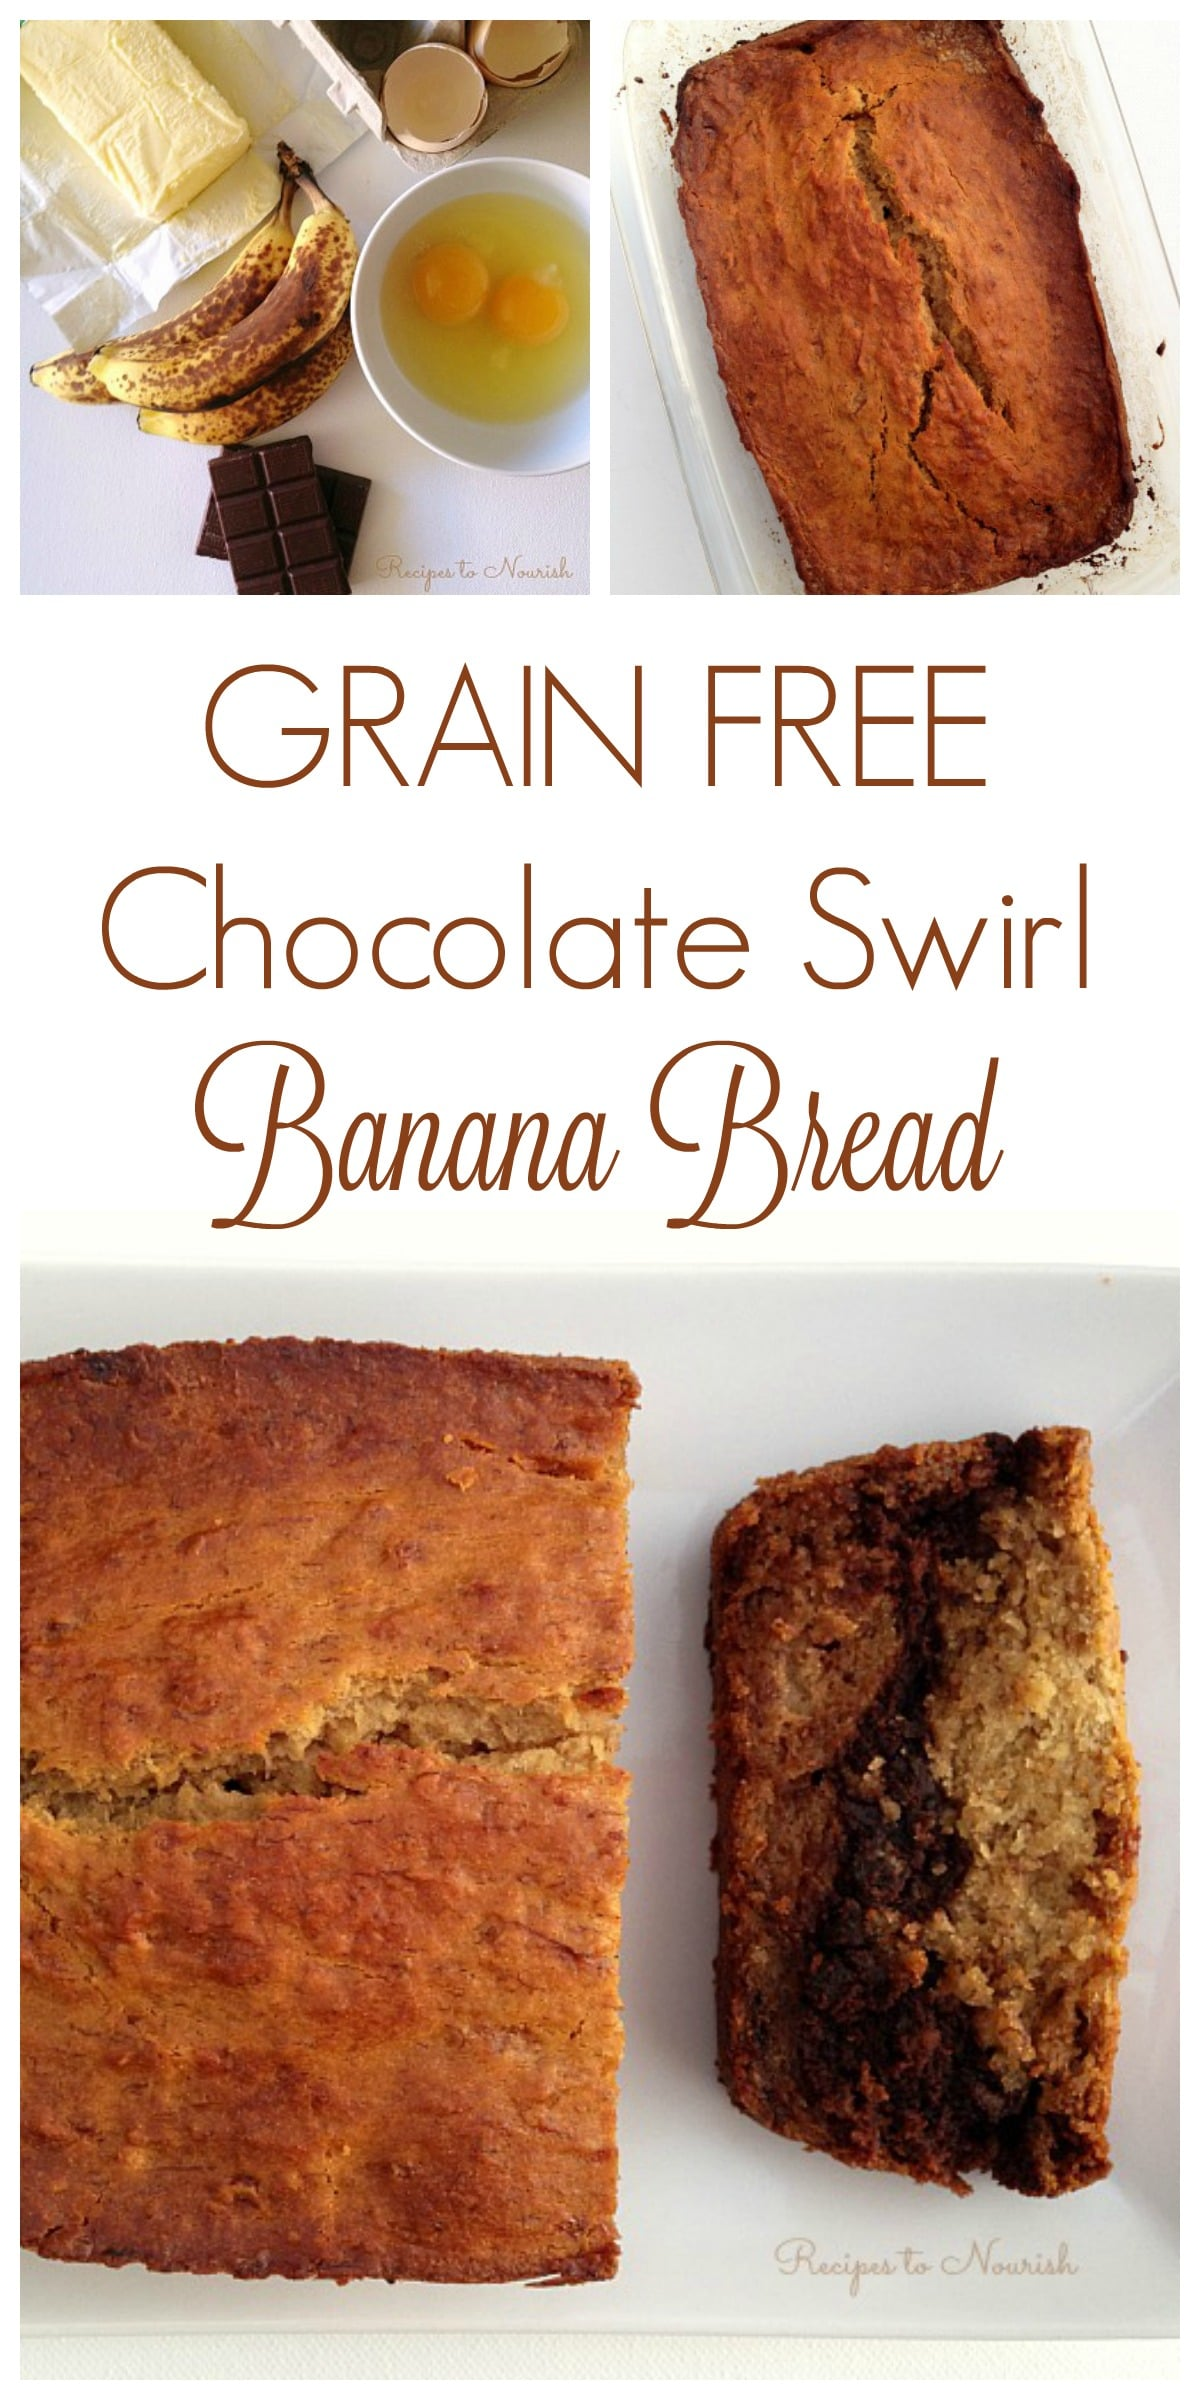 Grain Free Chocolate Swirl Banana Bread ... melted chocolate adds a rich, delicious layer to this classic real food quick bread. | Recipes to Nourish // Gluten Free | Healthy | Breakfast | Real Food